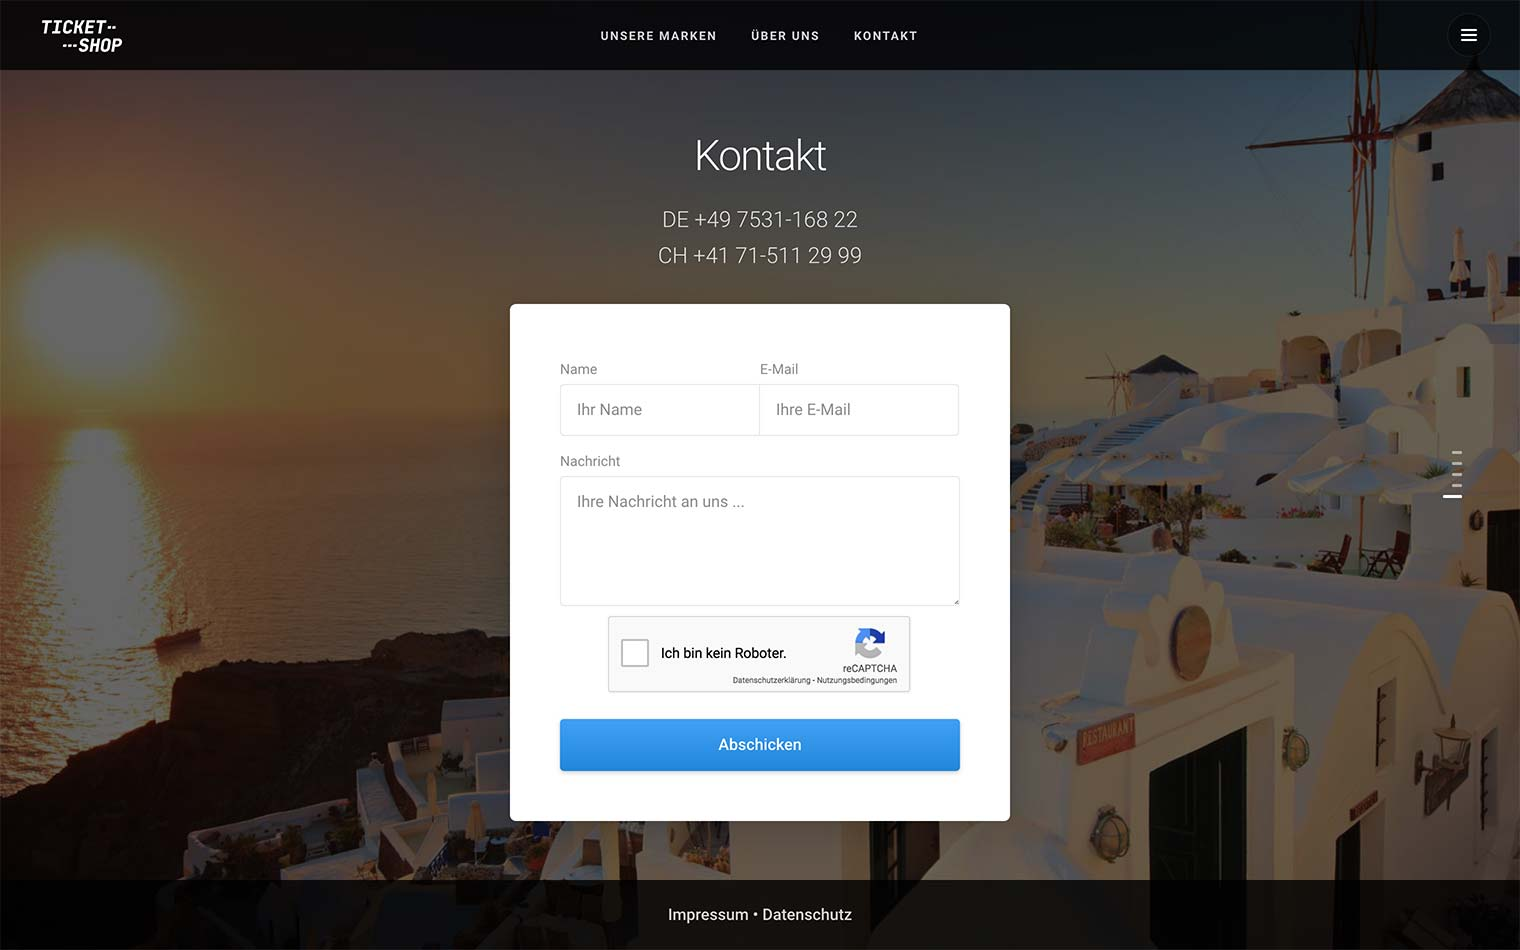 Kontakt Ticket-Shop